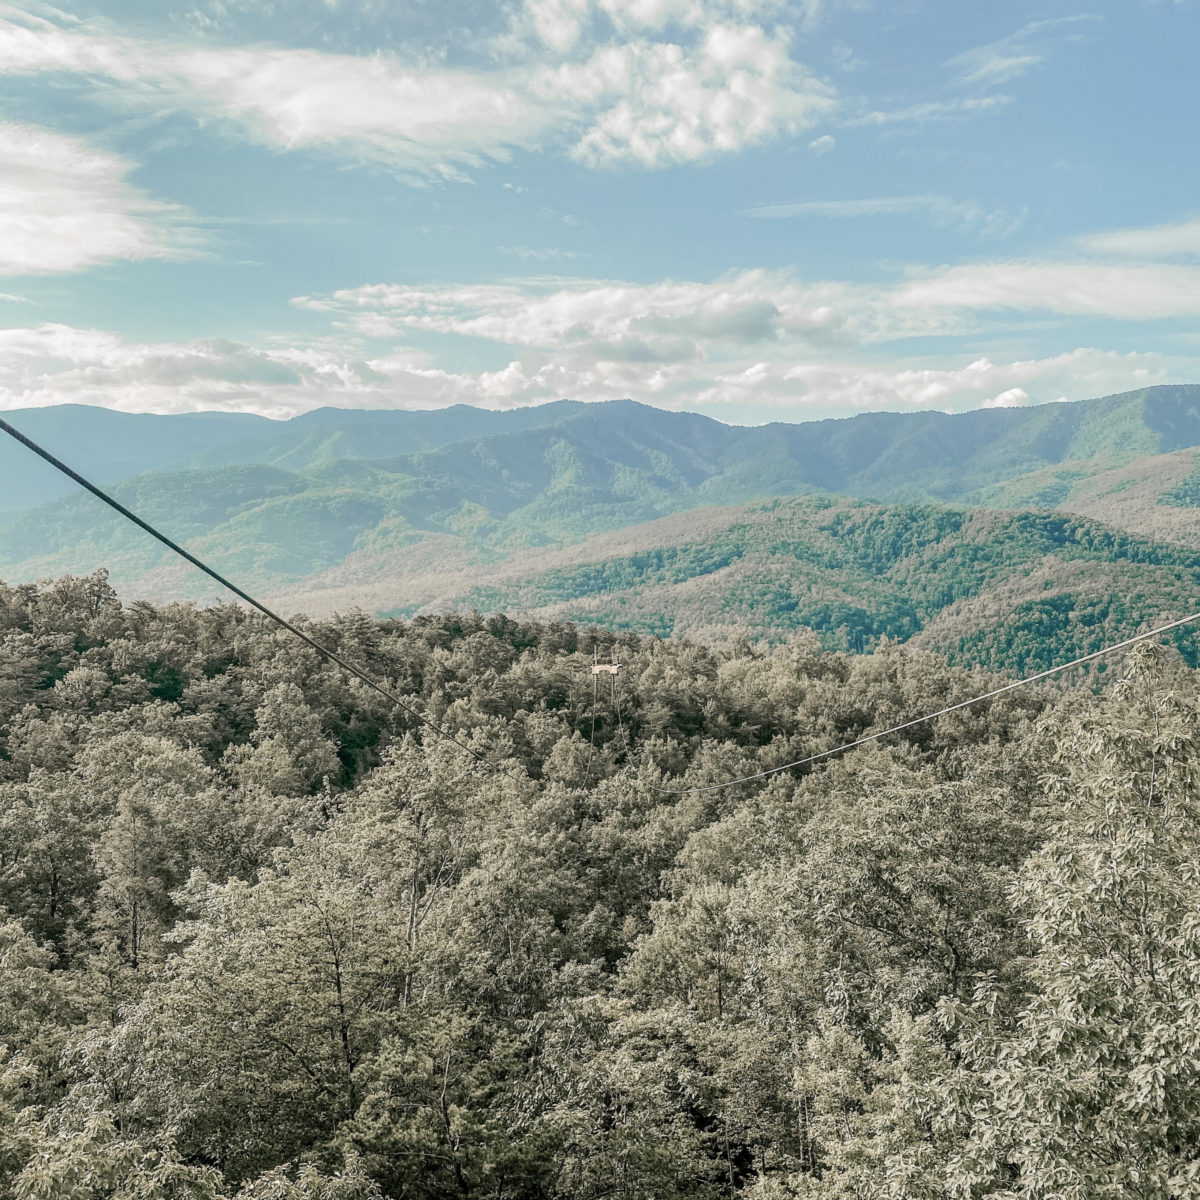 A Great Smoky Mountains Adventure | d-ravel.com